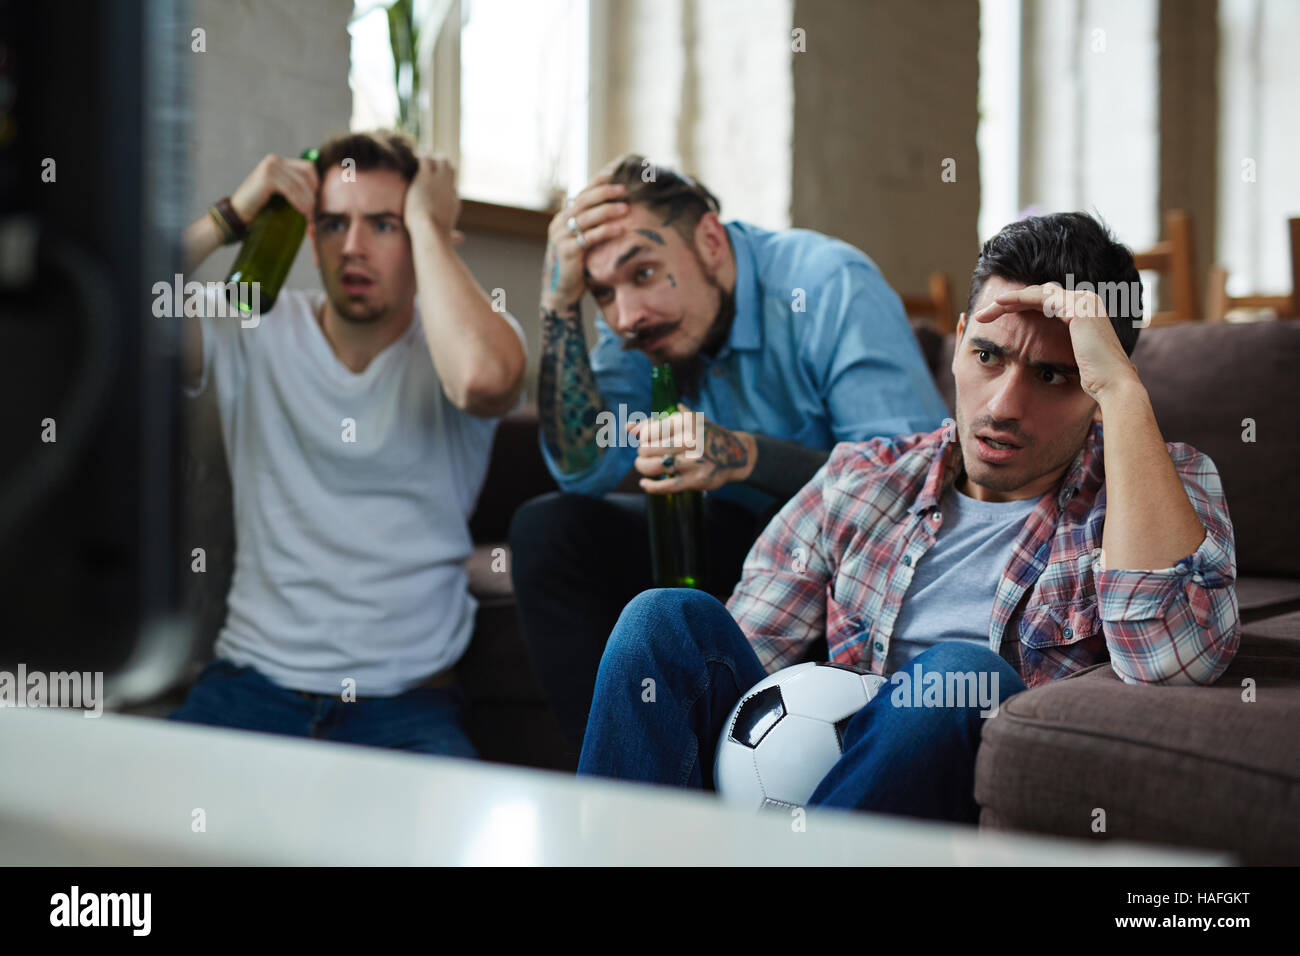 Dissatisfied guys sitting in front of tv and watching football broadcast Stock Photo